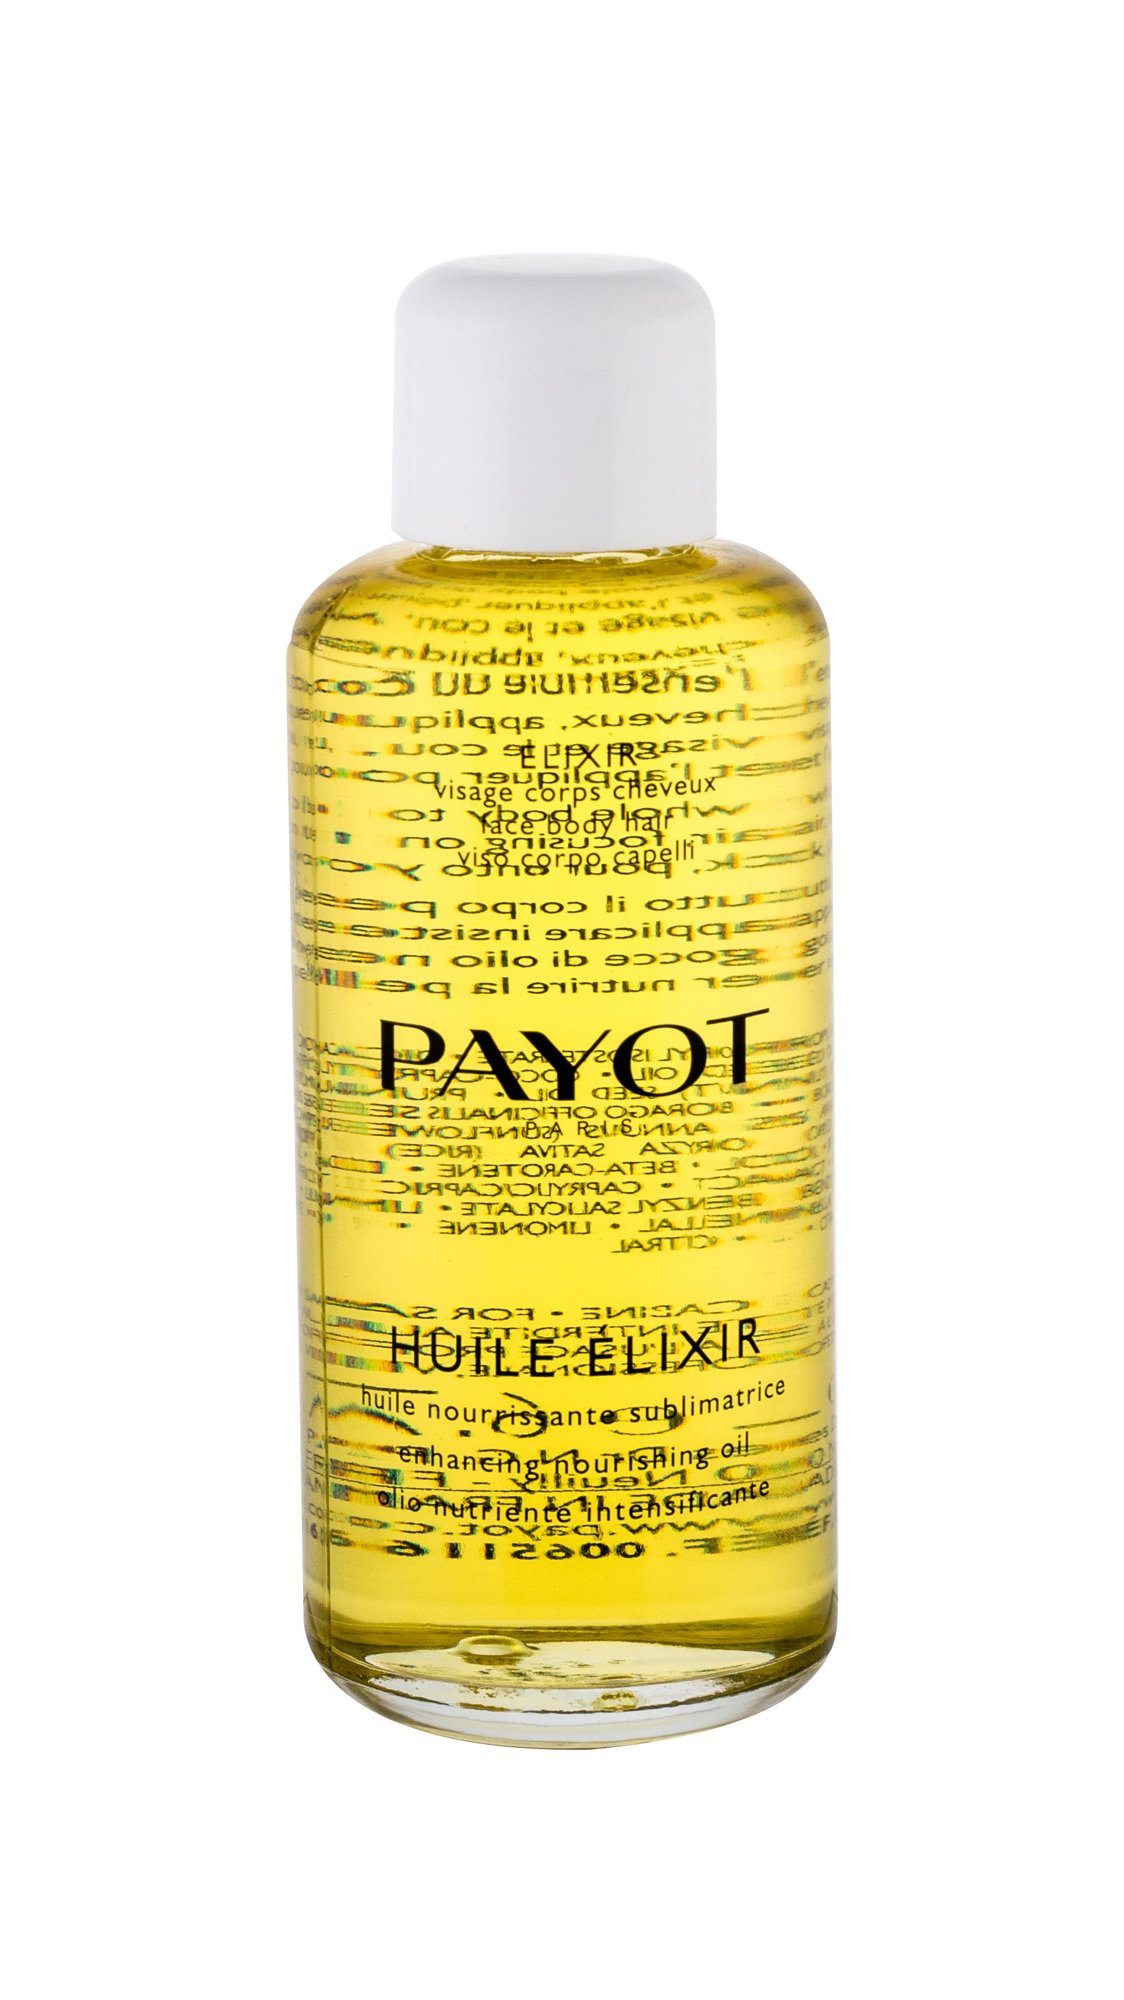 PAYOT Body Élixir Body Oil 200ml